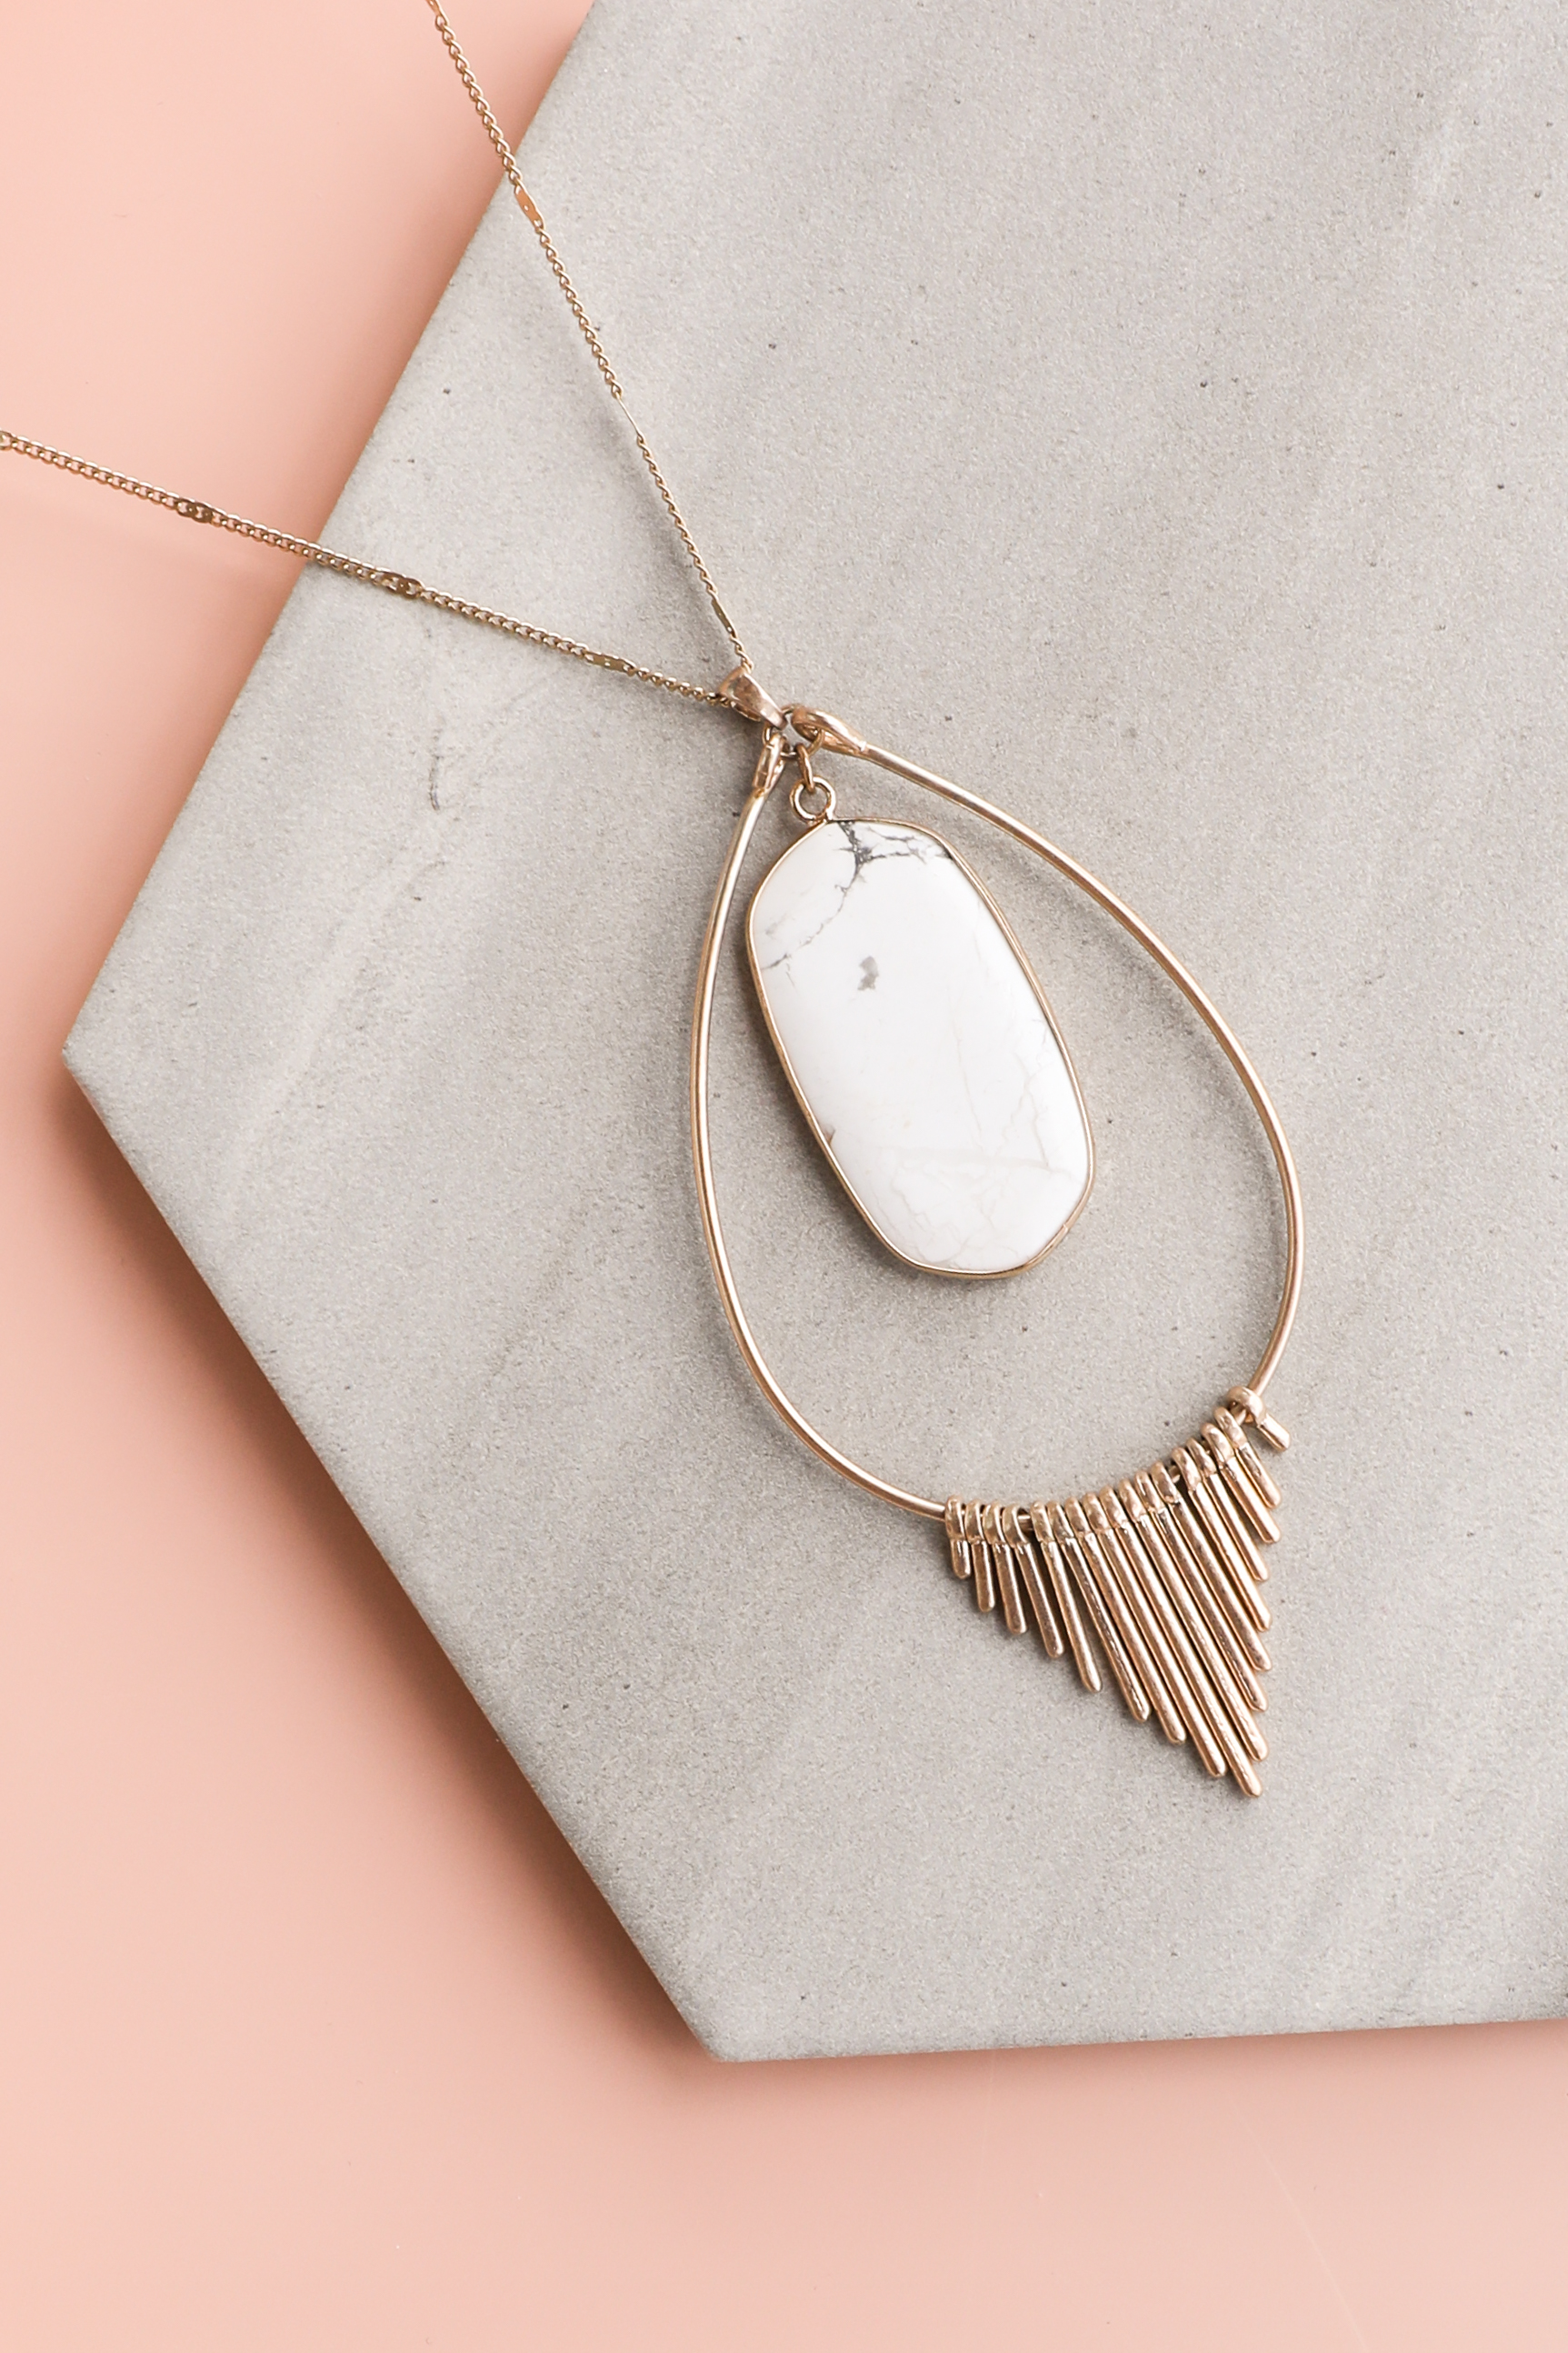 Gold Long Necklace with Marble Pendant and Metal Fringe